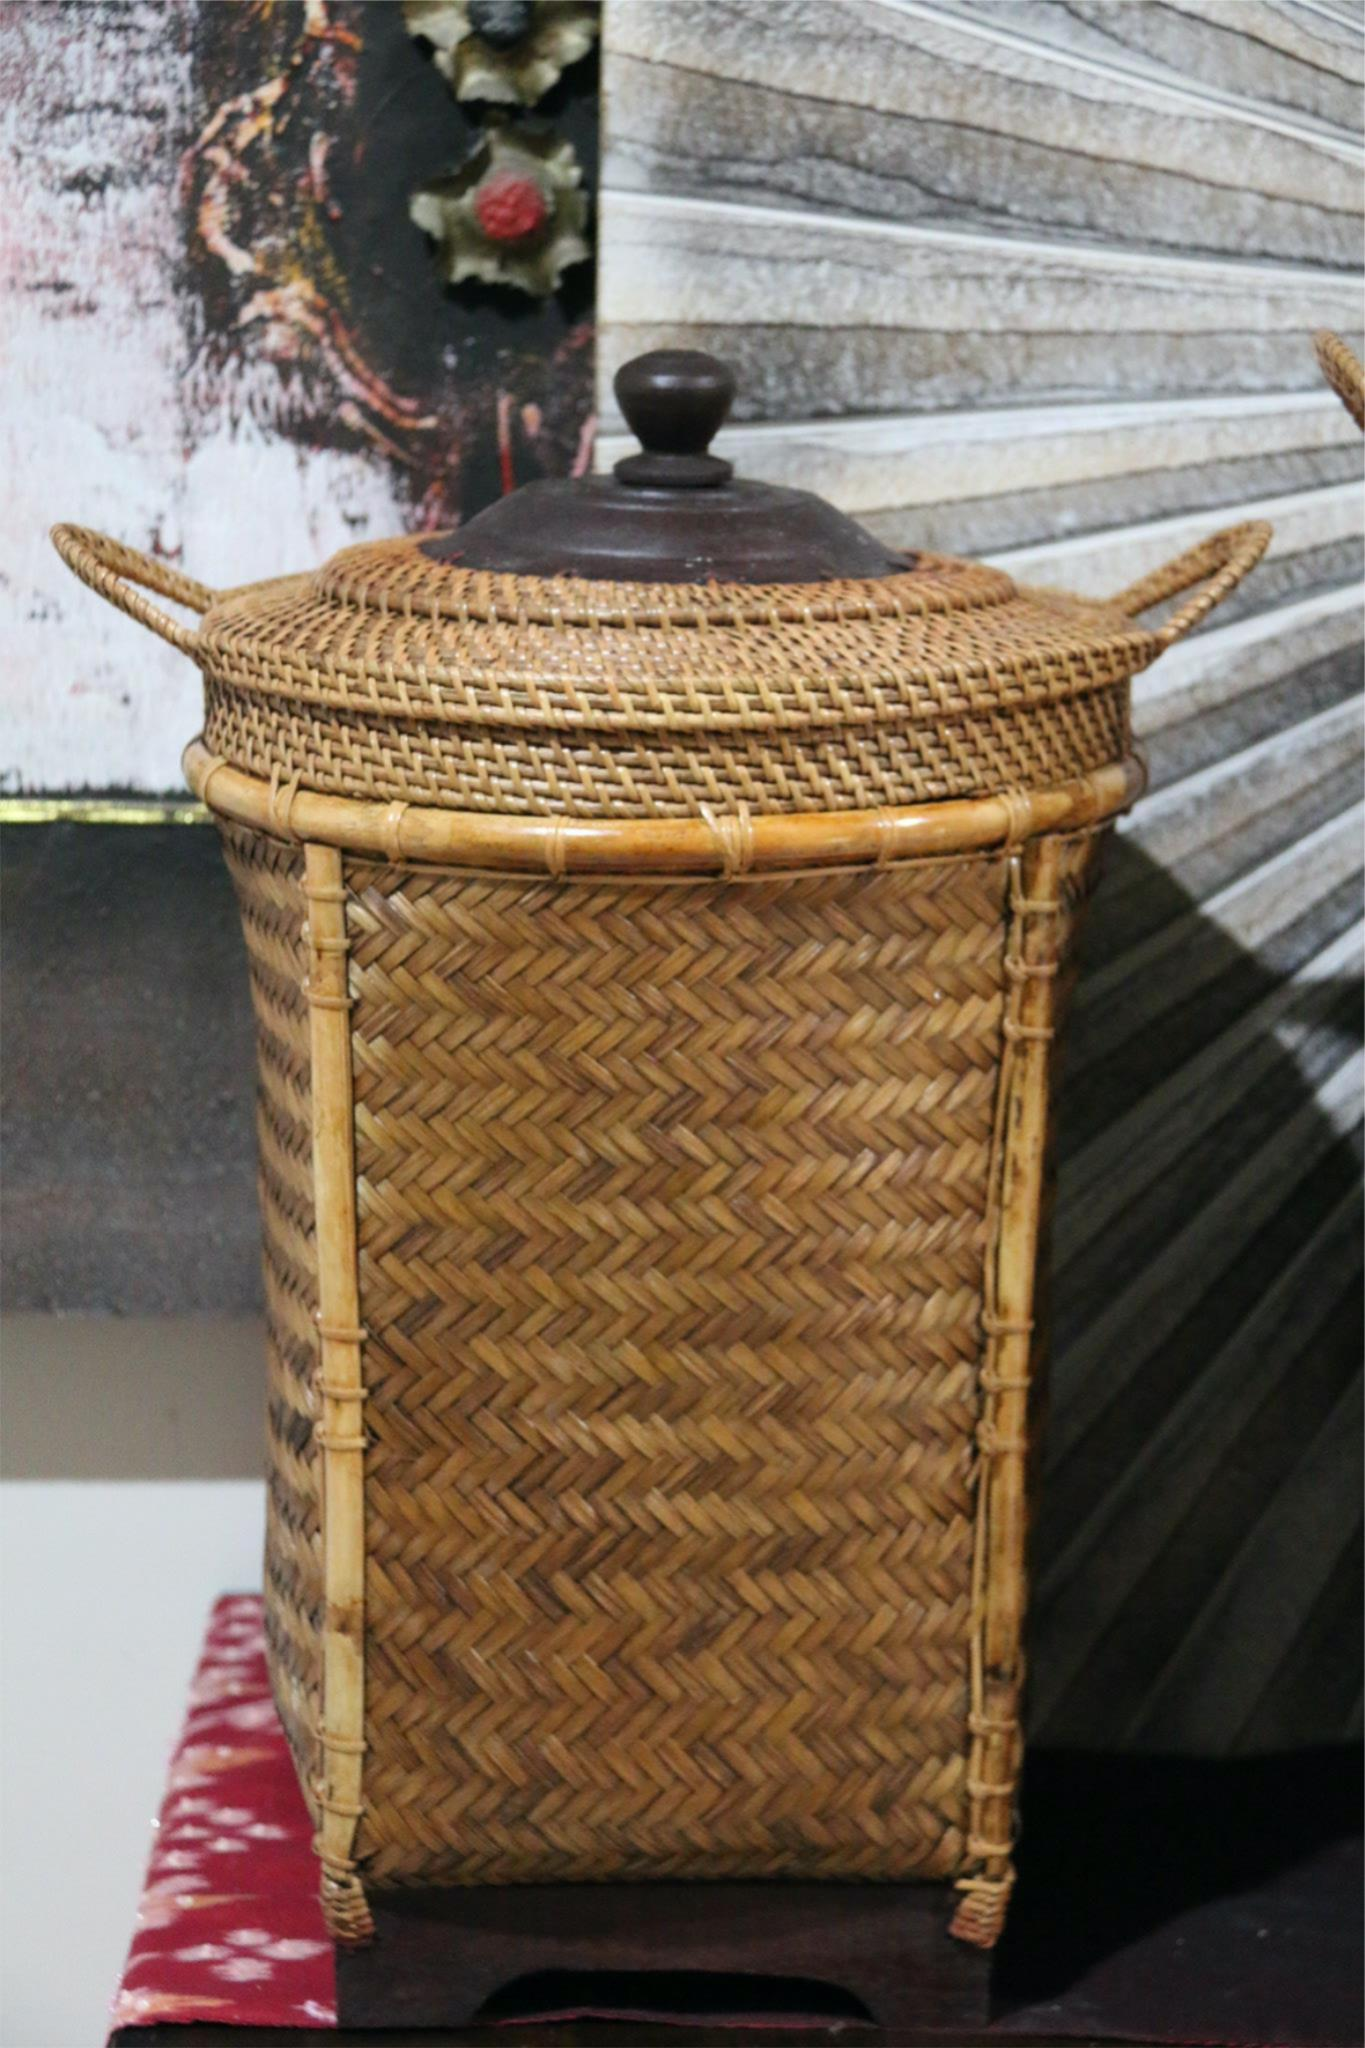 NEW BALINESE HAND WOVEN BAMBOO / RATTAN LAUNDRY BASKET WITH LID